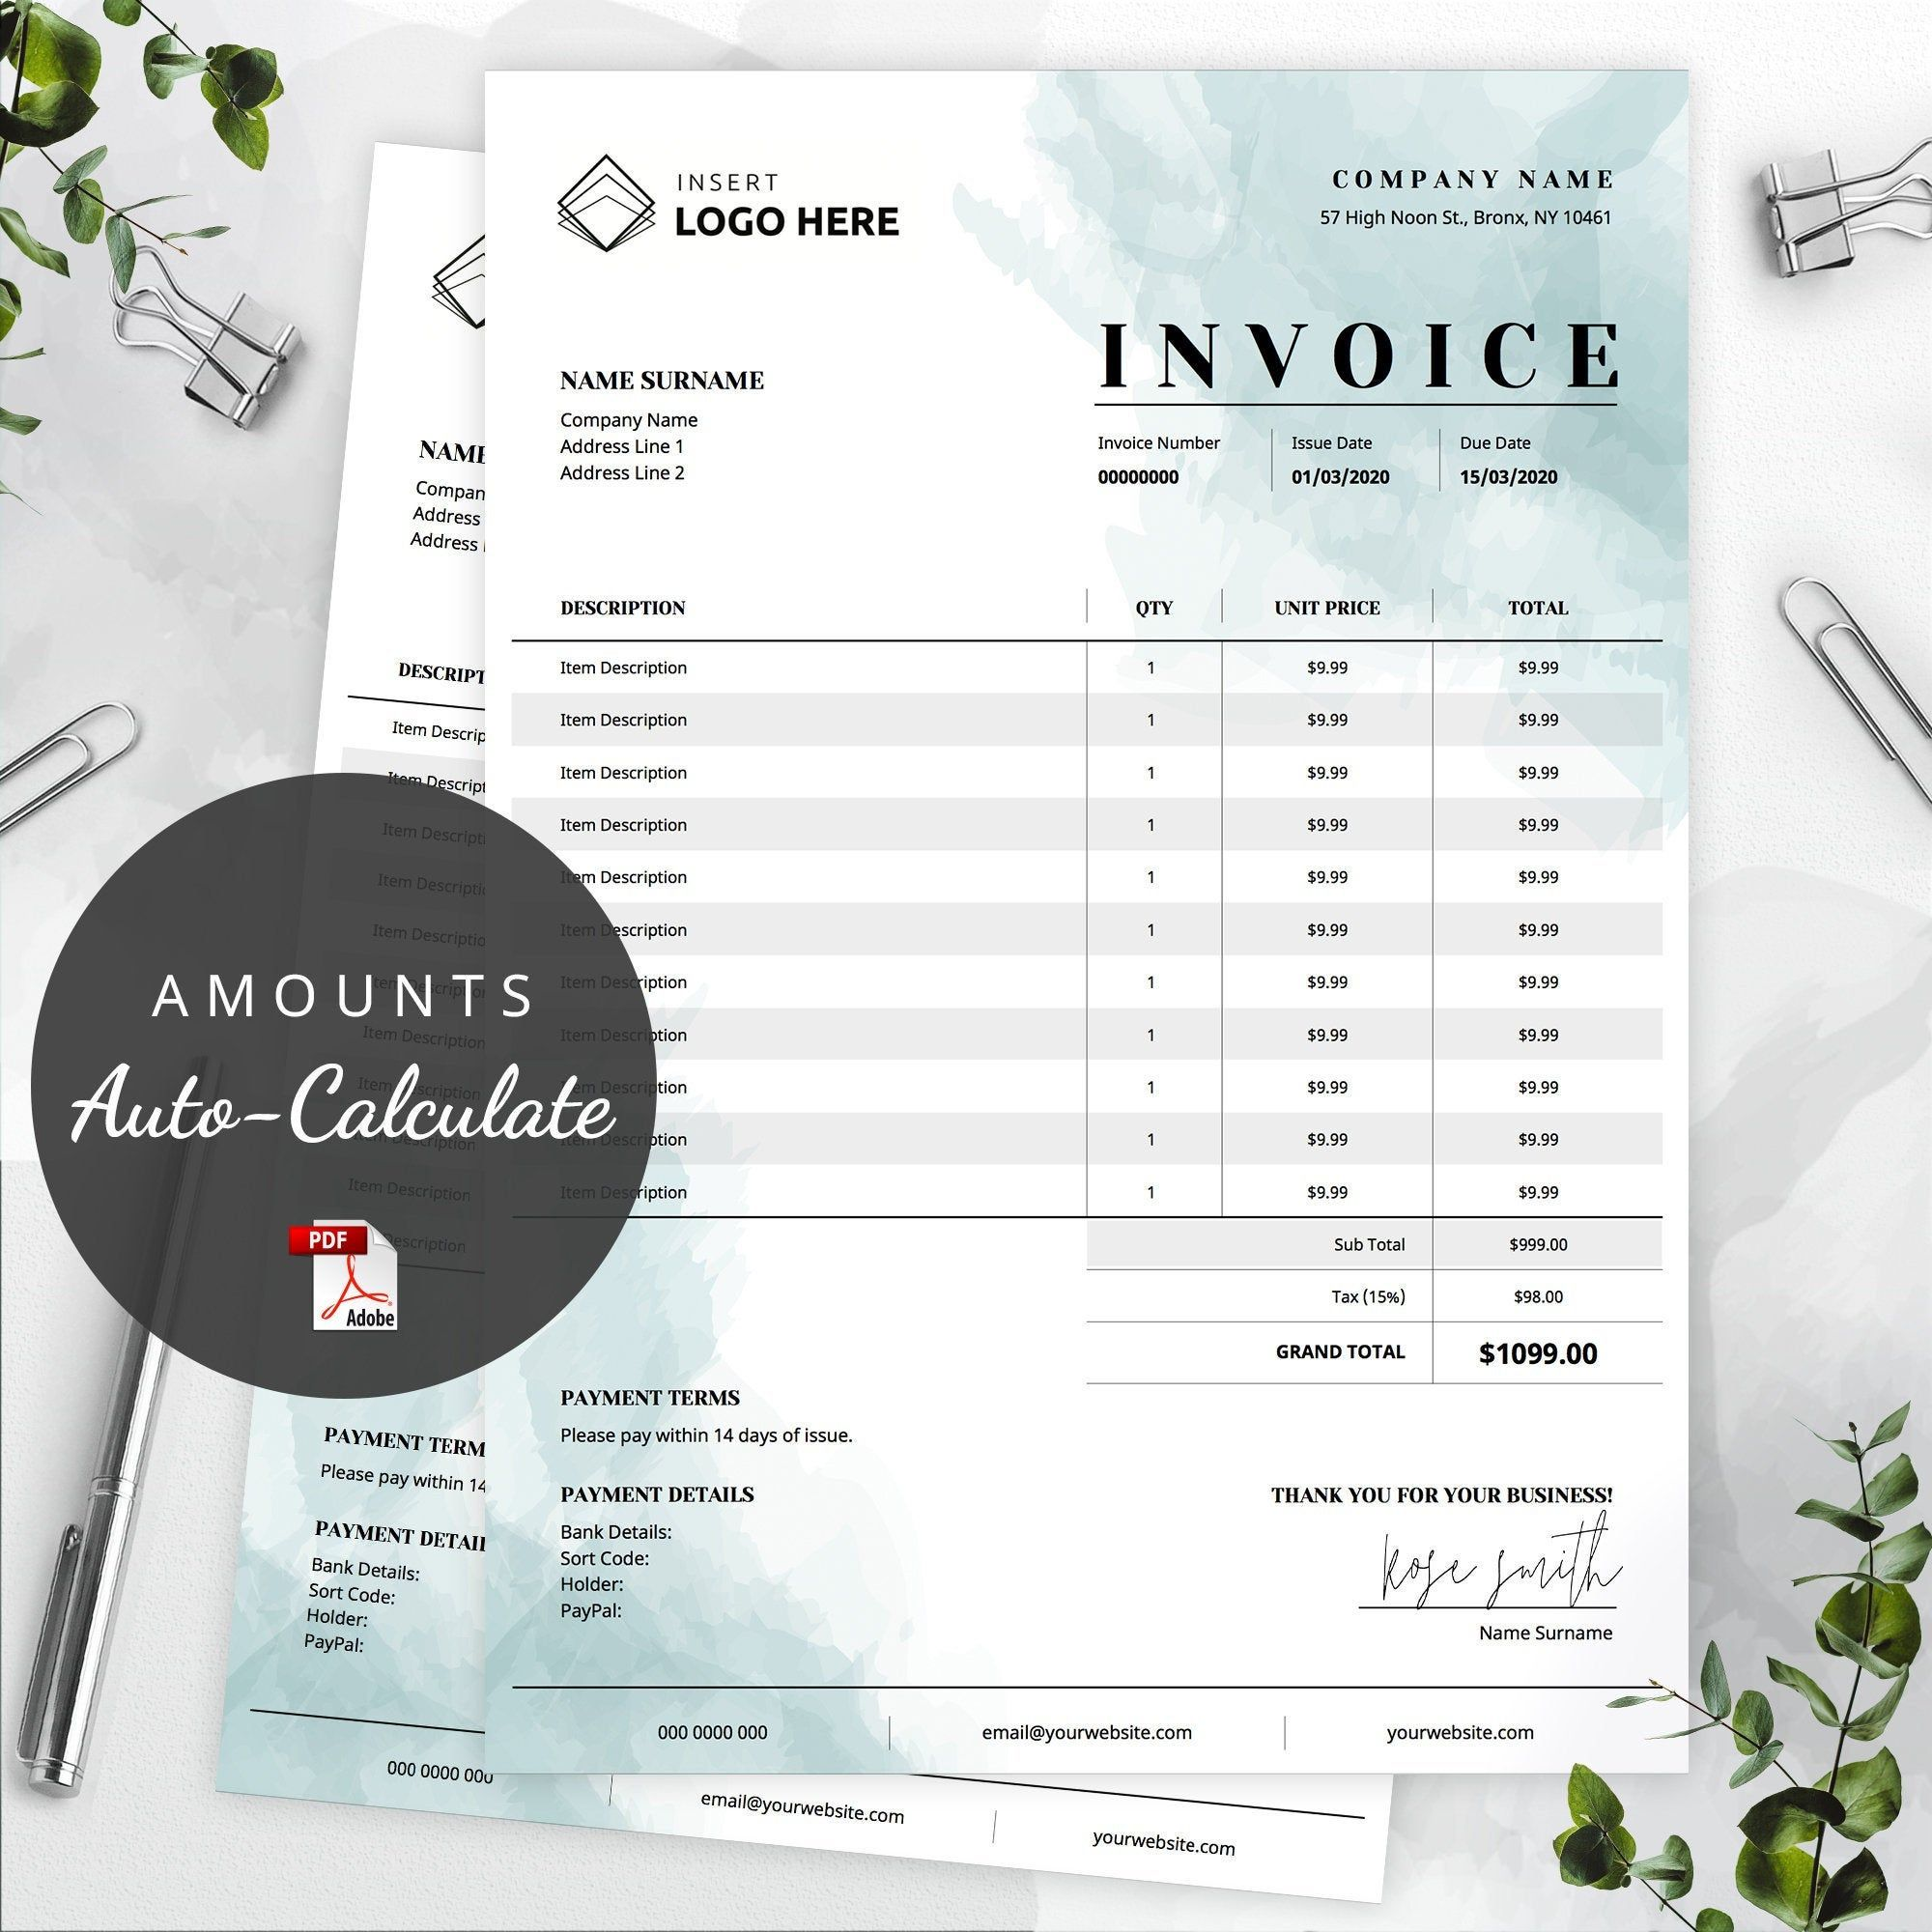 Editable Order Form Template Printable Order Form Instant Etsy Invoice Template Quote Template Printable Invoice